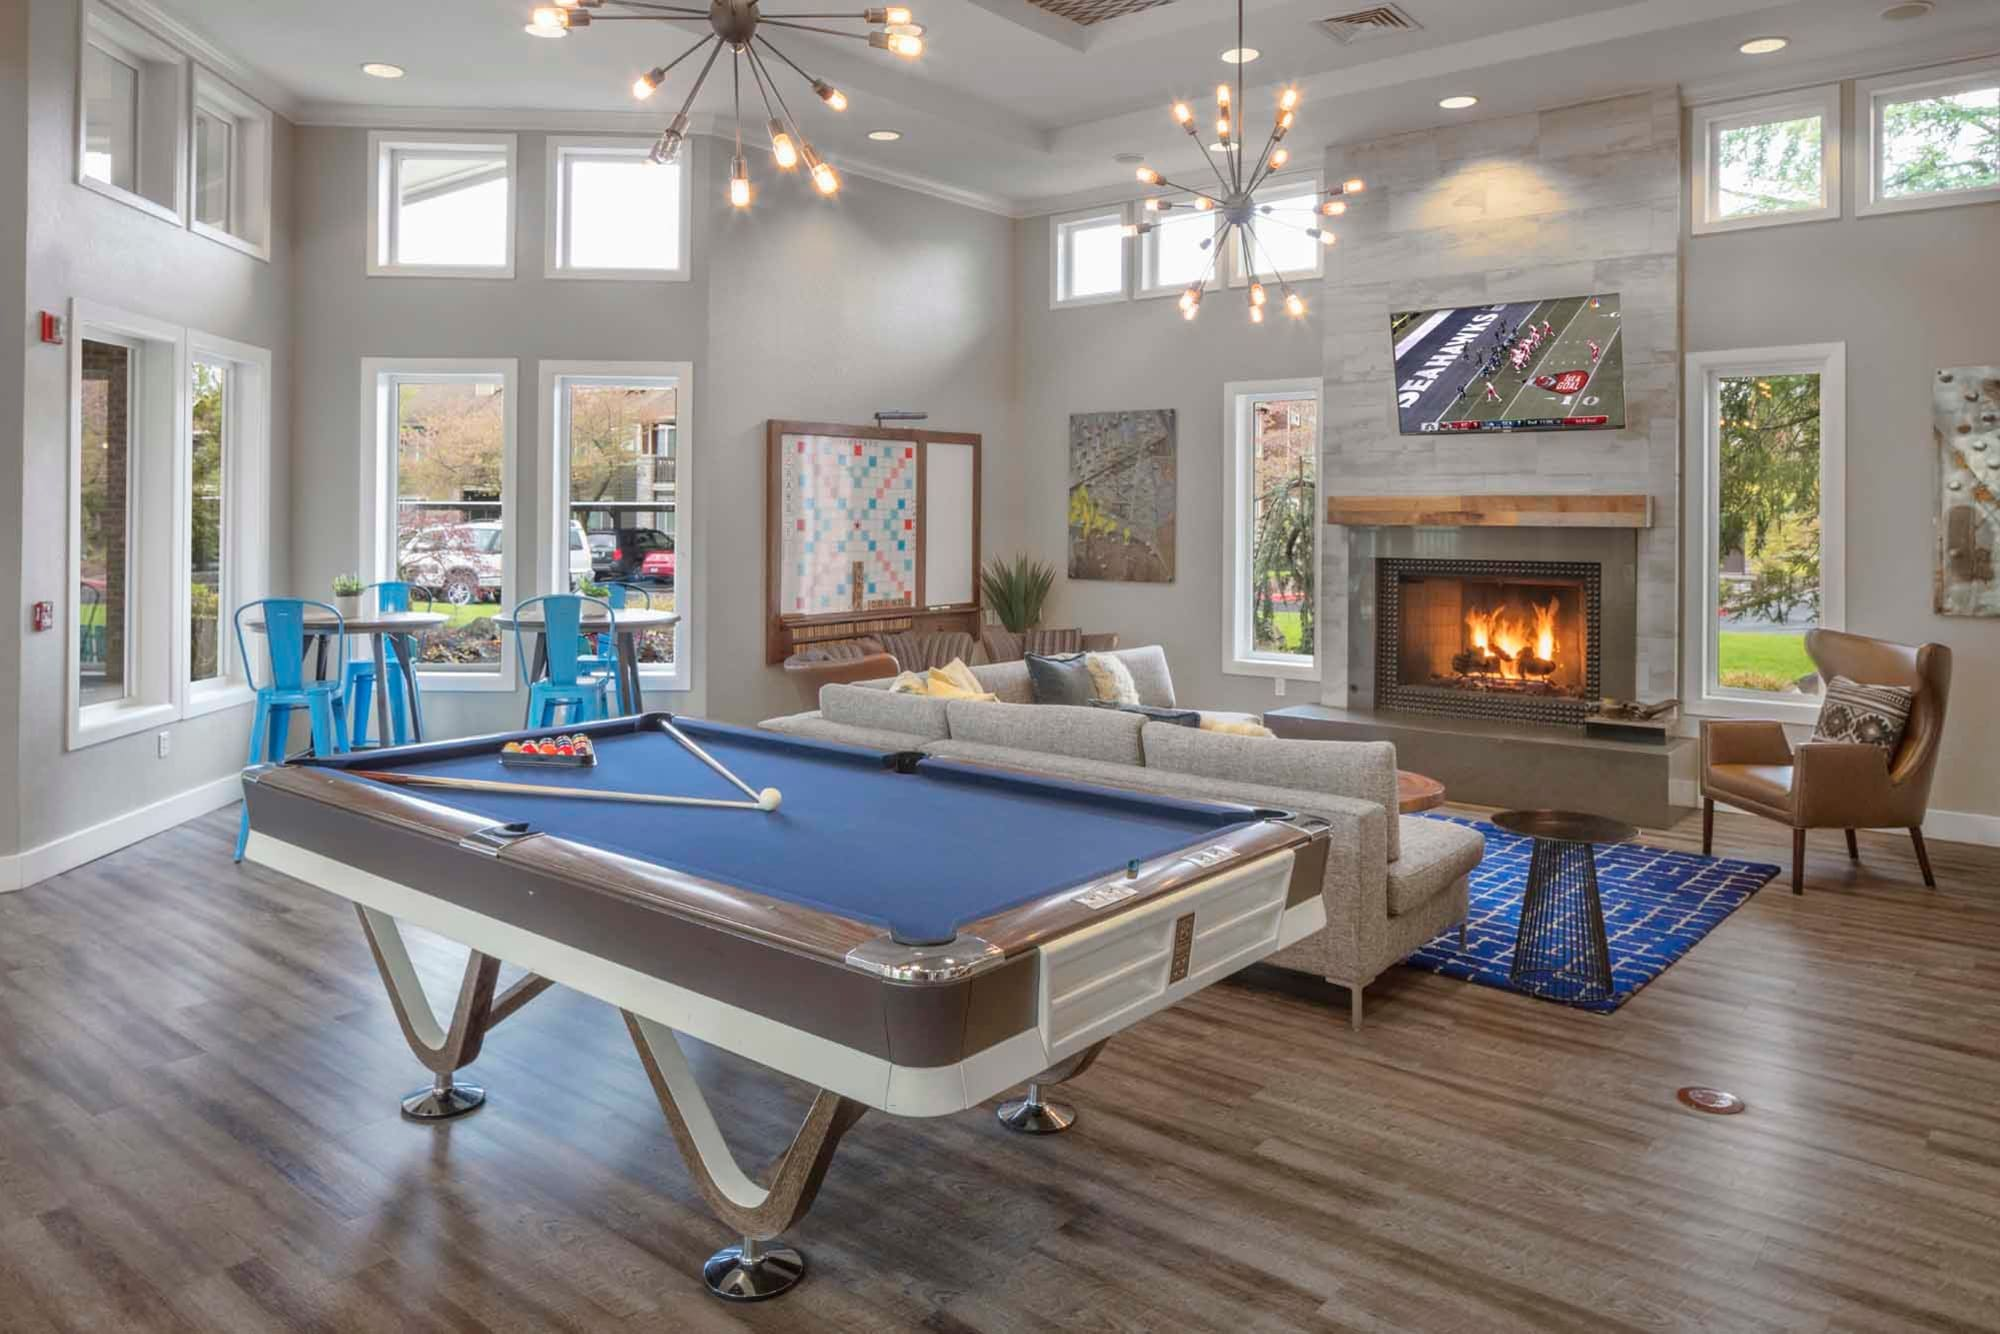 The clubhouse with pool table and hardwood floors at The Grove at Orenco Station in Hillsboro, Oregon